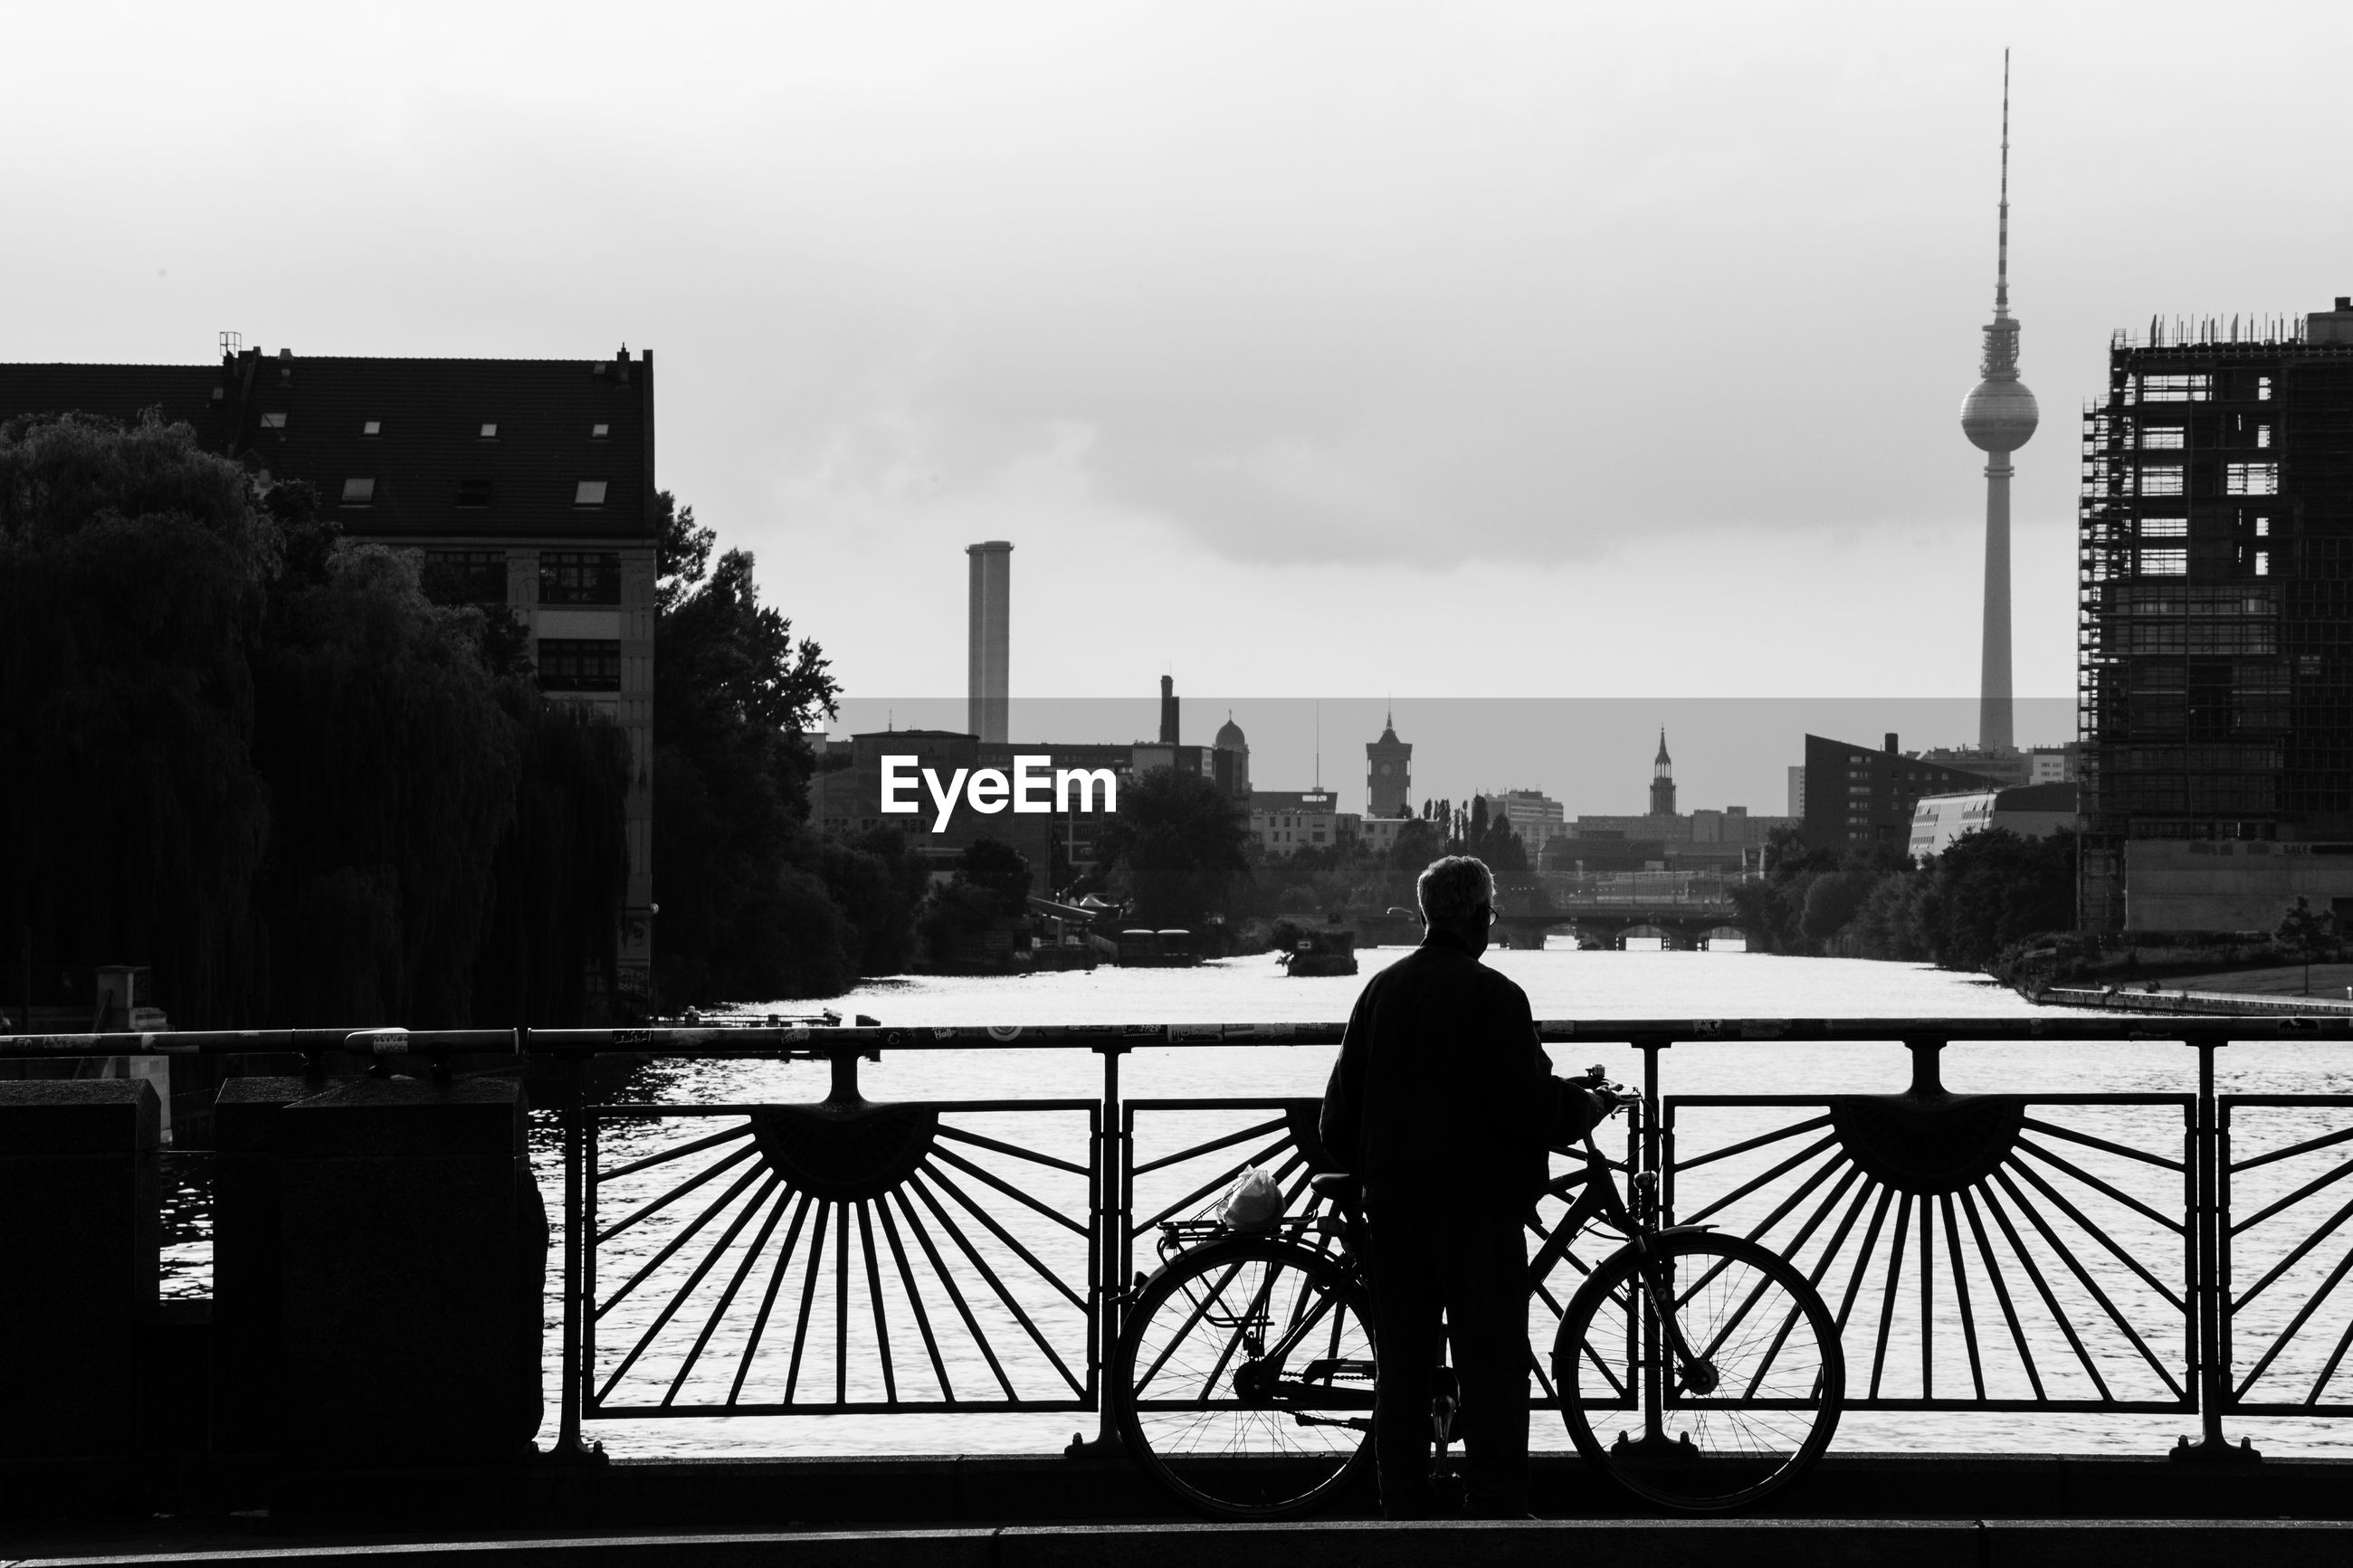 REAR VIEW OF MAN STANDING ON RAILING WITH CITY IN BACKGROUND